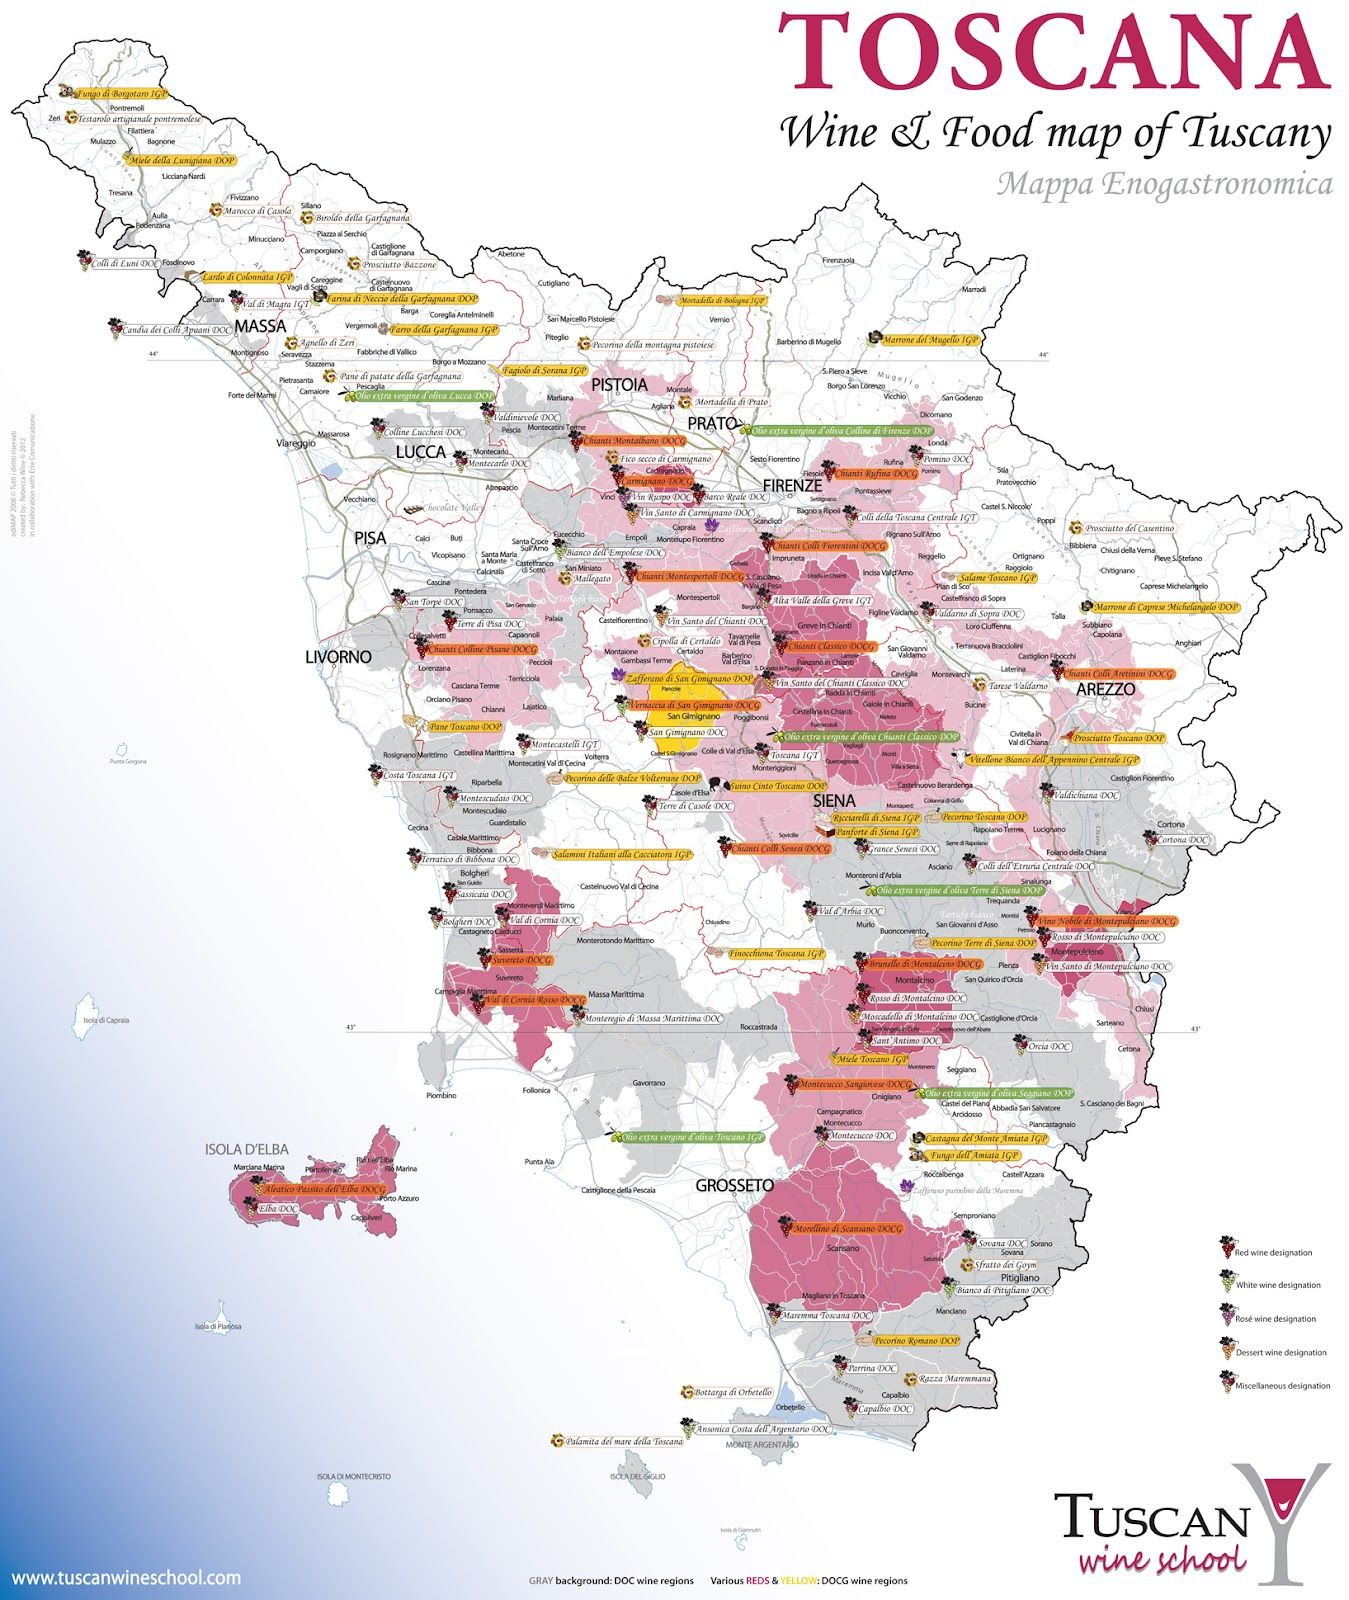 wine and food map of tuscany. wine and food map of tuscany  travel  pinterest  tuscany wine